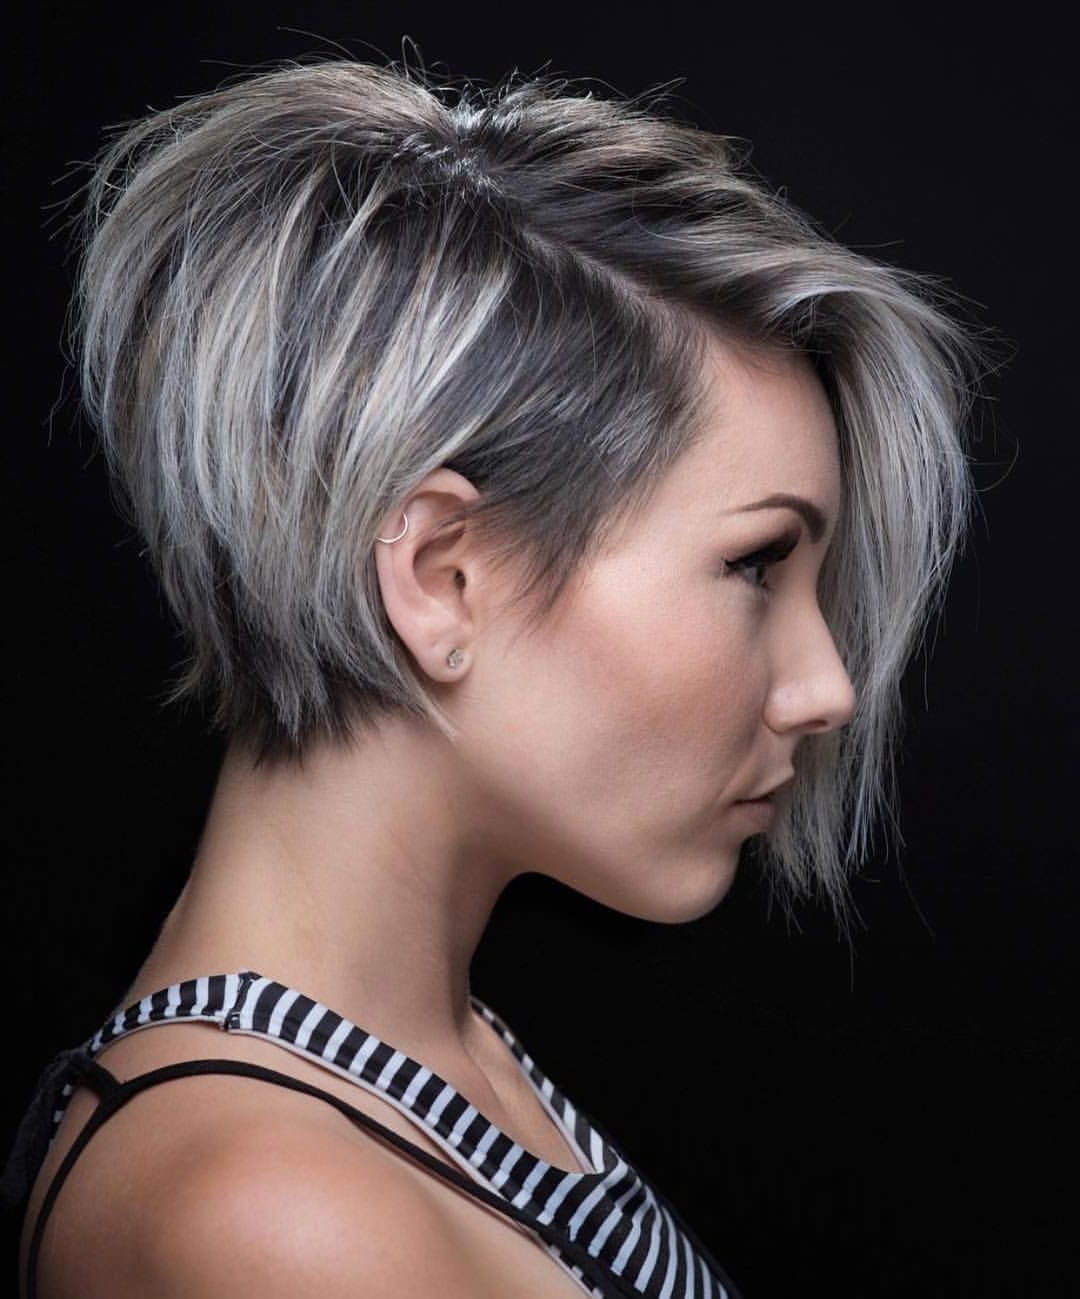 Pinkaleigh Bishop On Hair Inspo | Pinterest | Hair, Short Hair Intended For Asymmetrical Short Hairstyles (View 3 of 25)